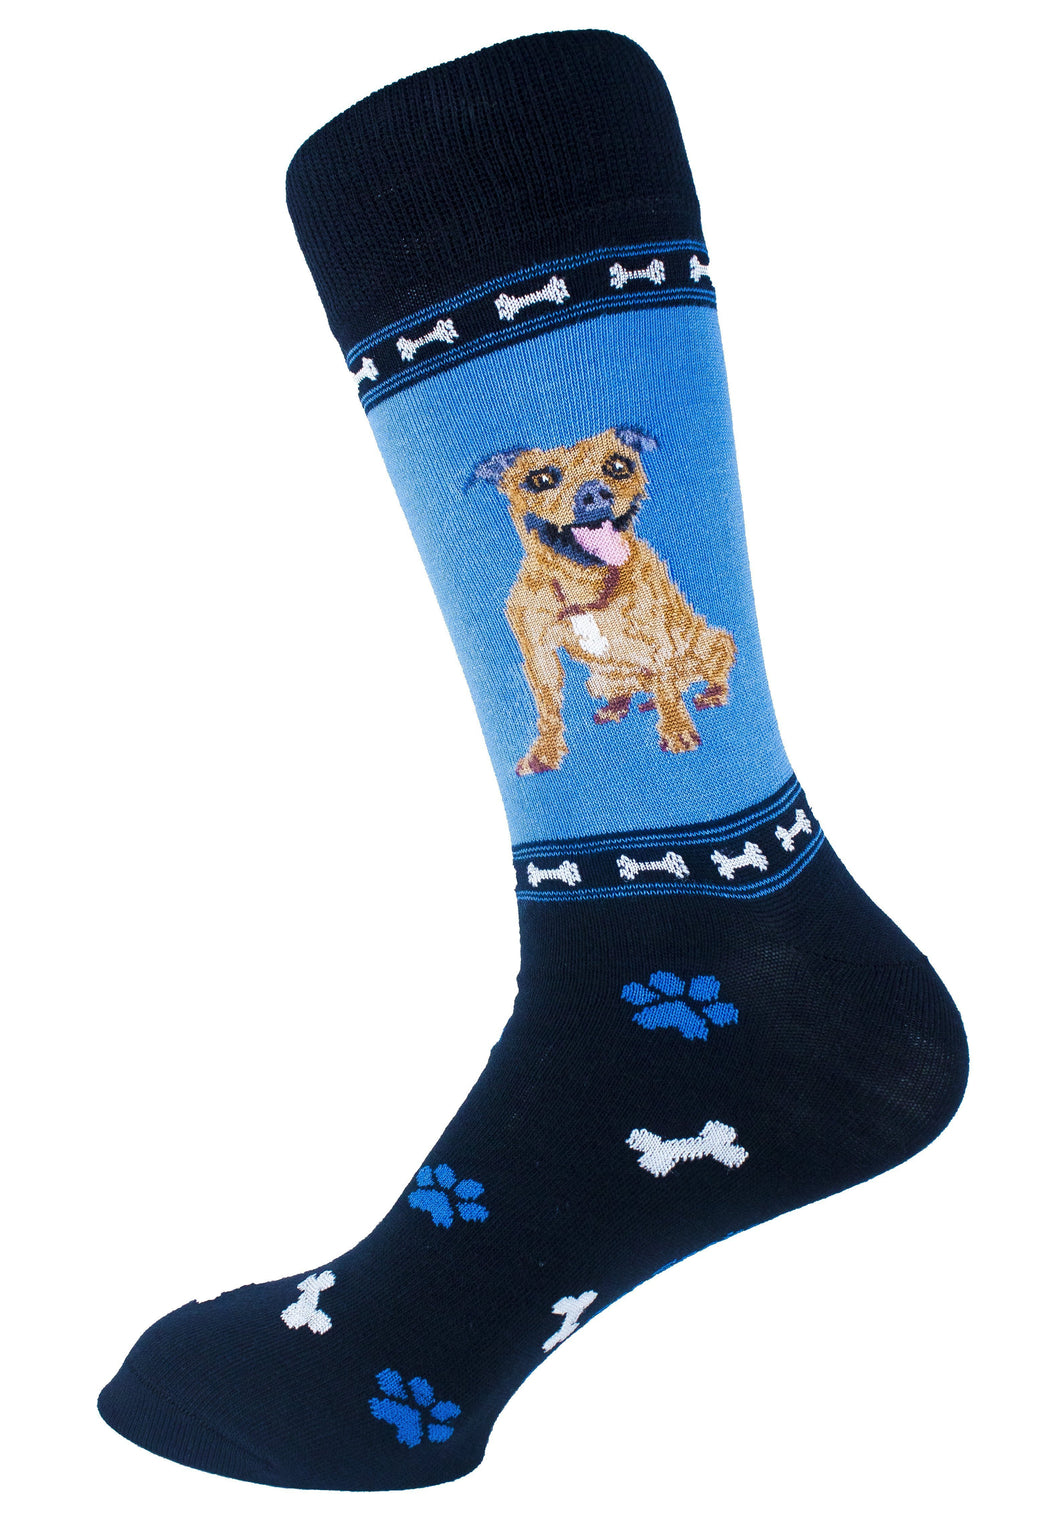 Pitbull Brindle Dog Socks Mens Signature